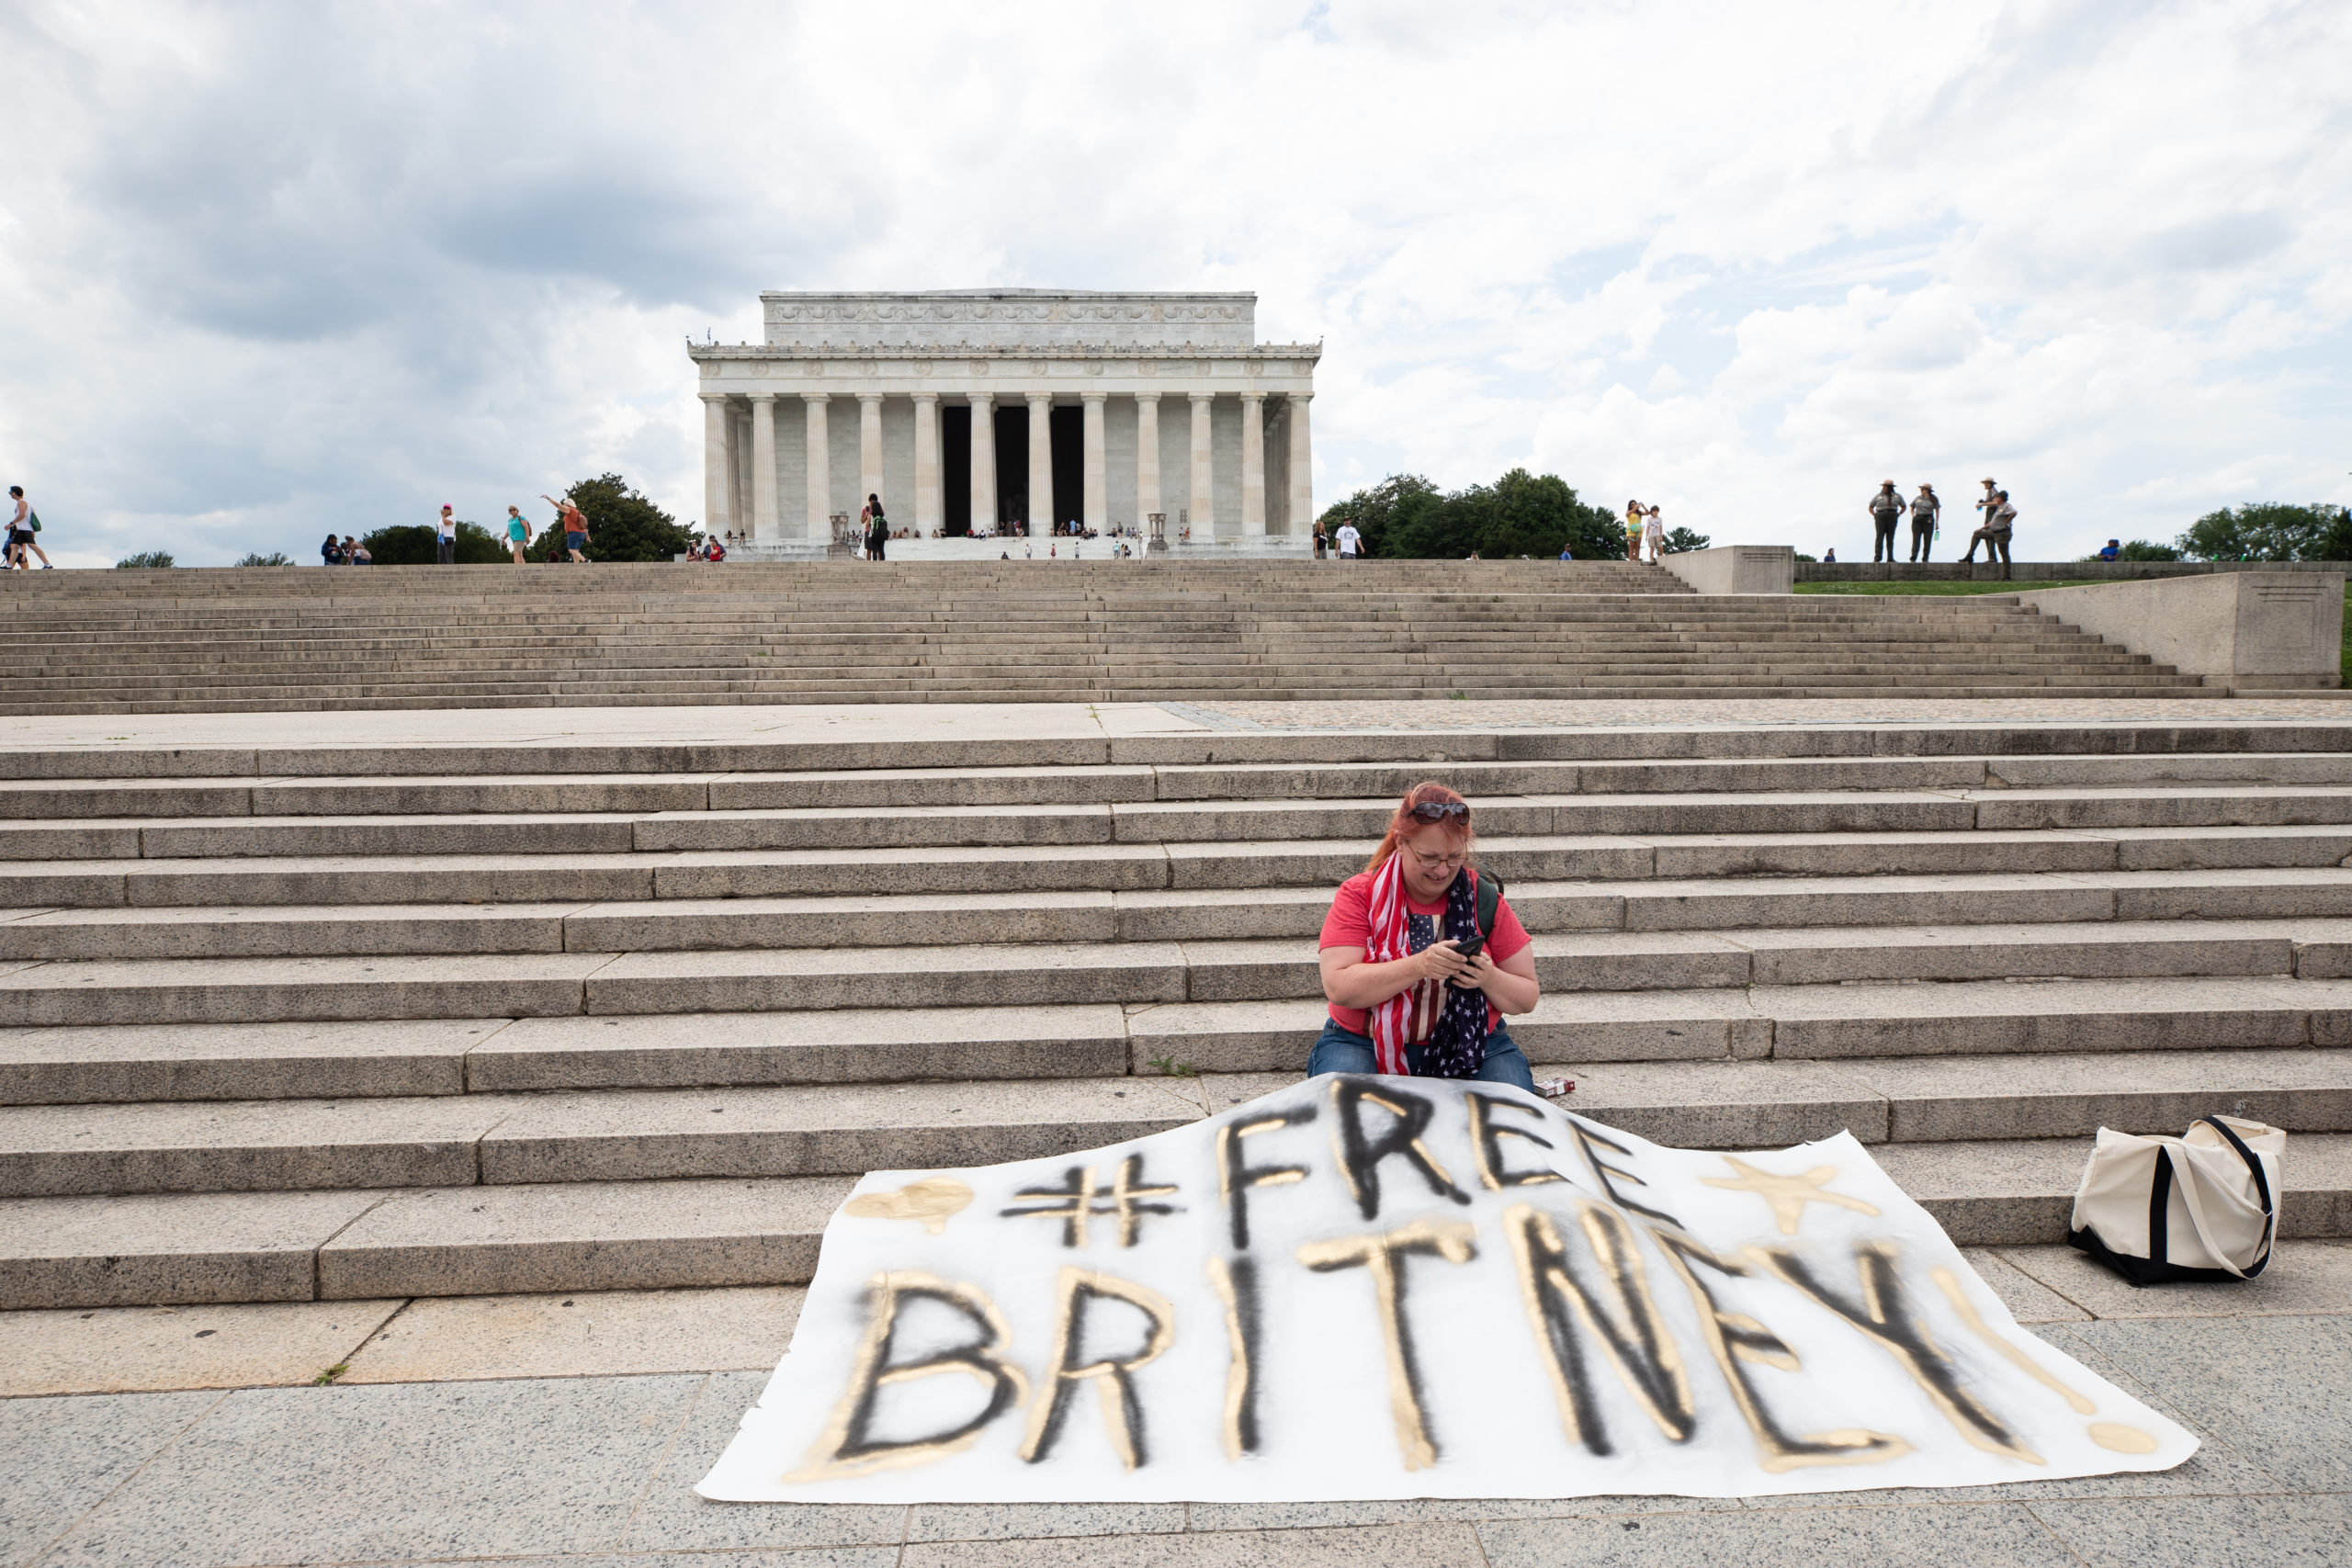 """A crowd gathered for a """"free Britany"""" rally to call attention to the pop star's battle over her conservatorship in Washington, D.C. on July 14, 2021. (Kaylee Greenlee- Daily Caller News Foundation)"""